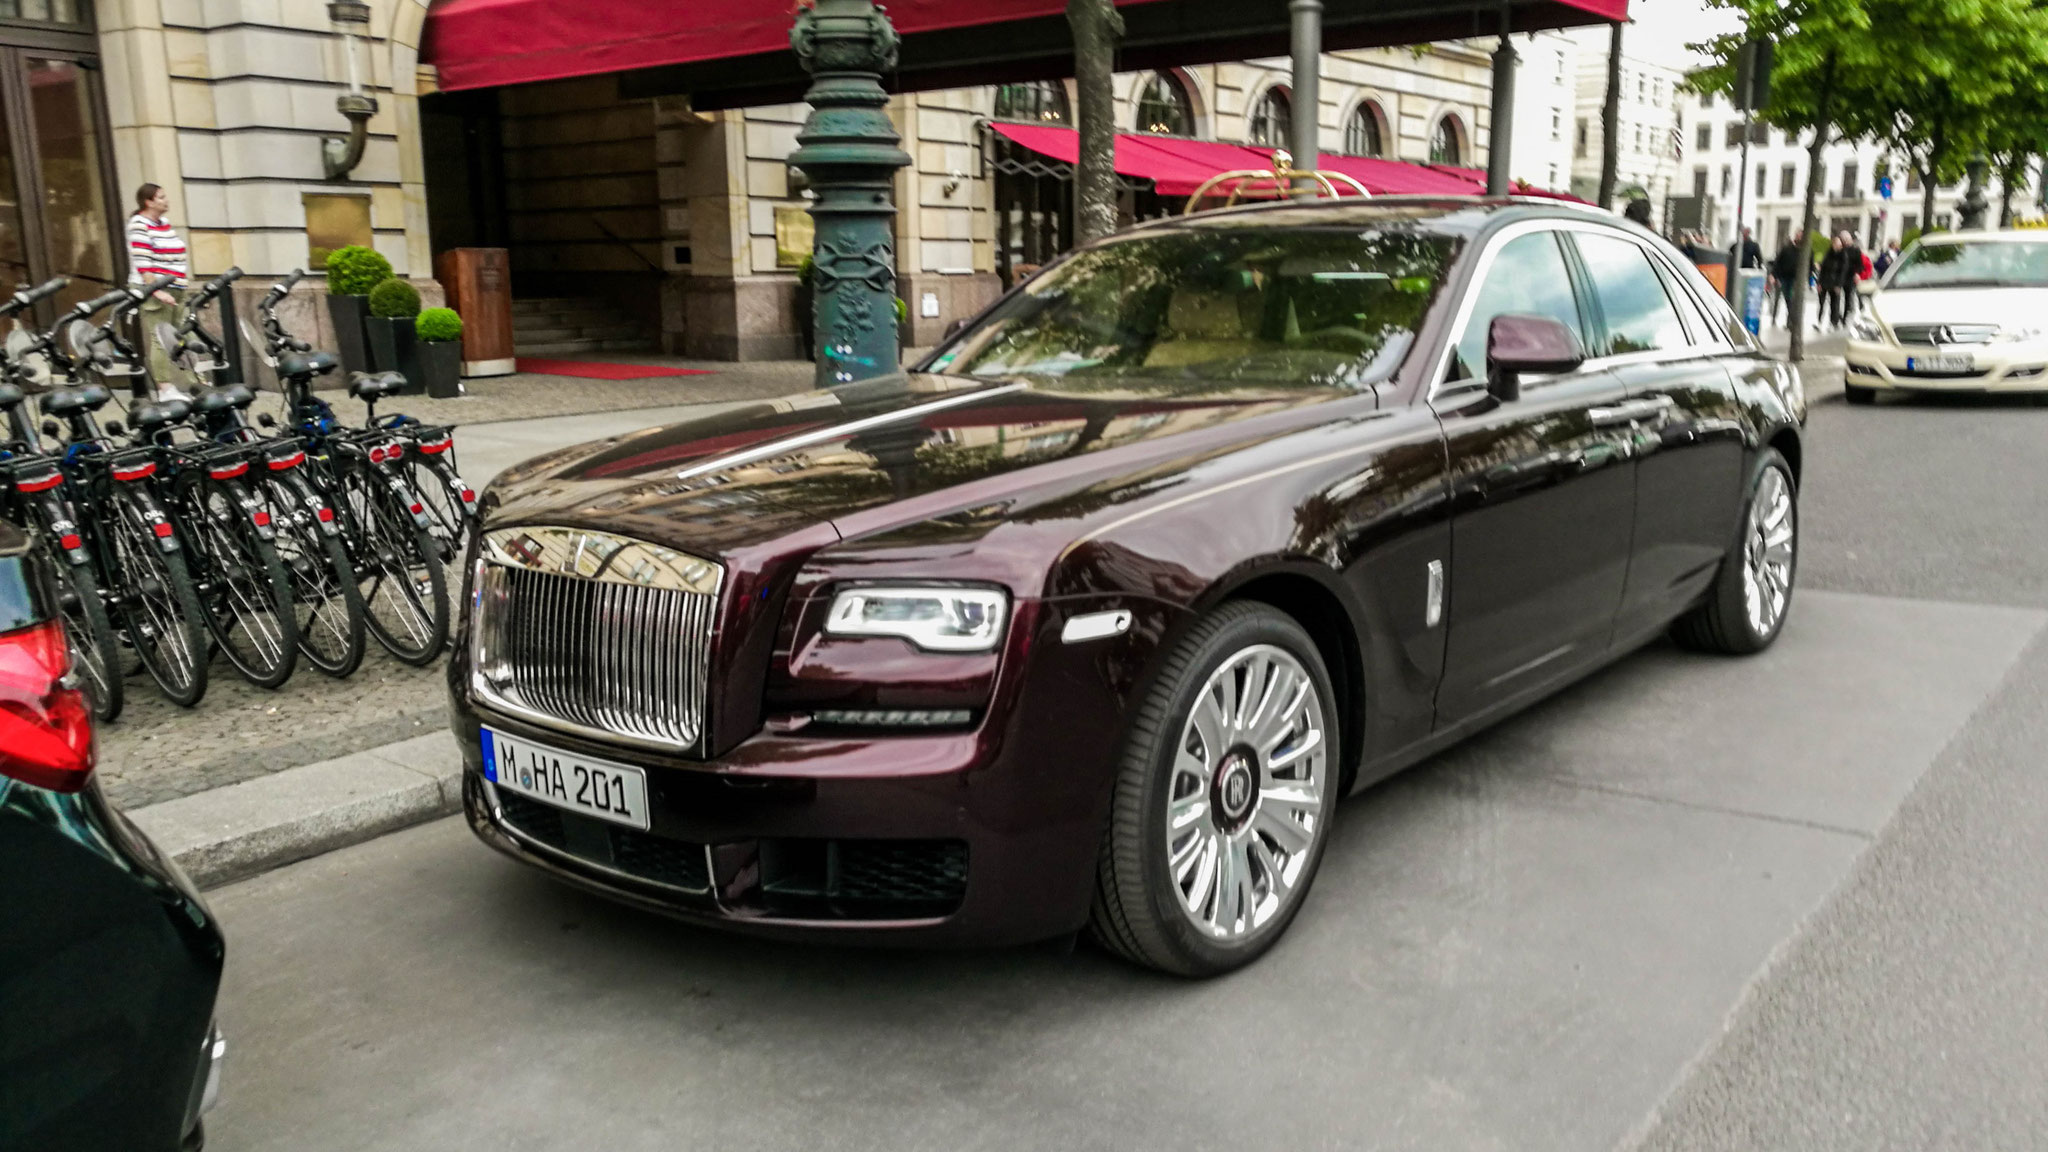 Rolls Royce Ghost -M-HA-201